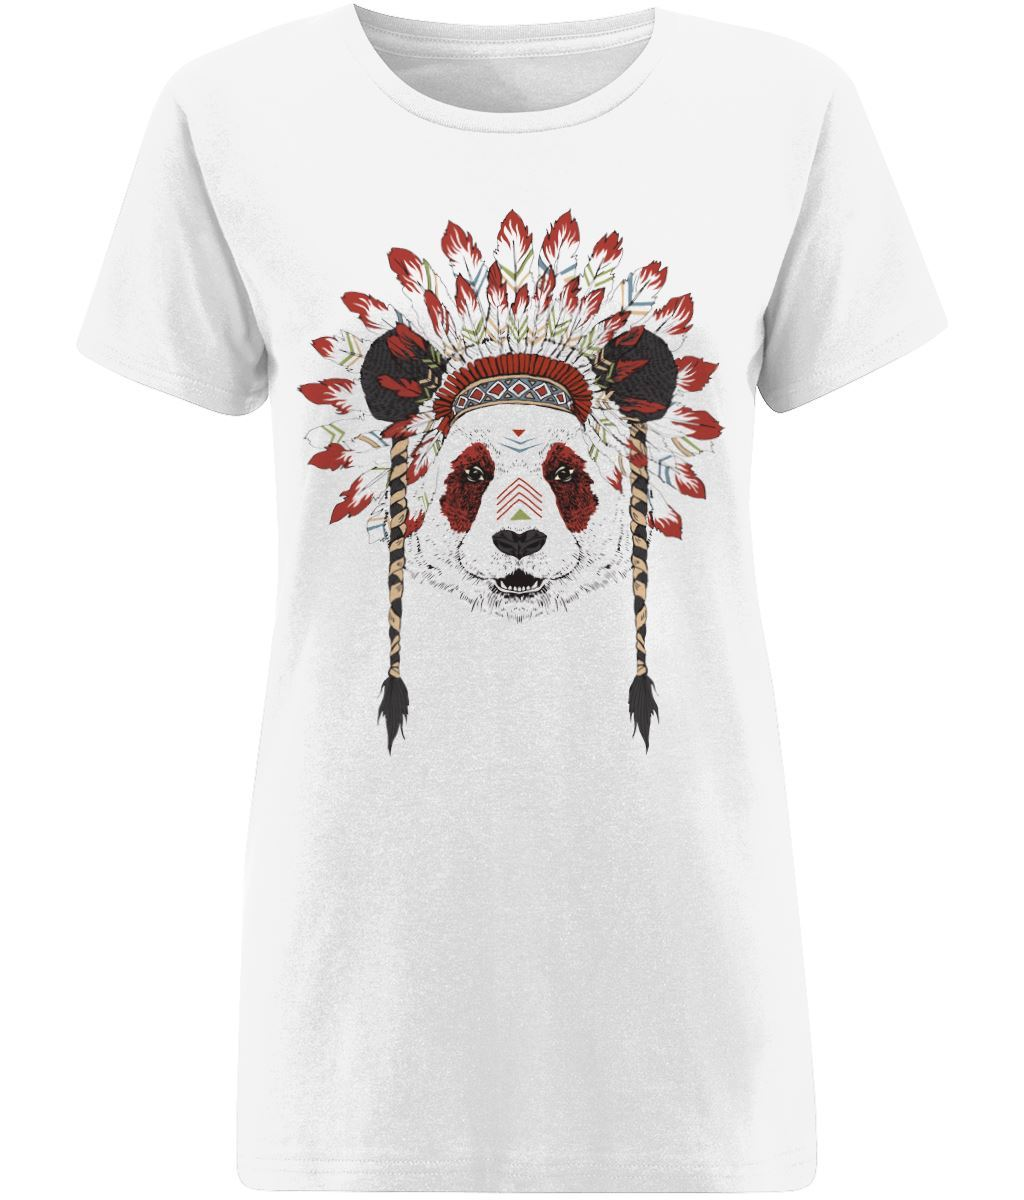 Bohemian Panda T-shirt Clothing IndianBelieves X-Small White